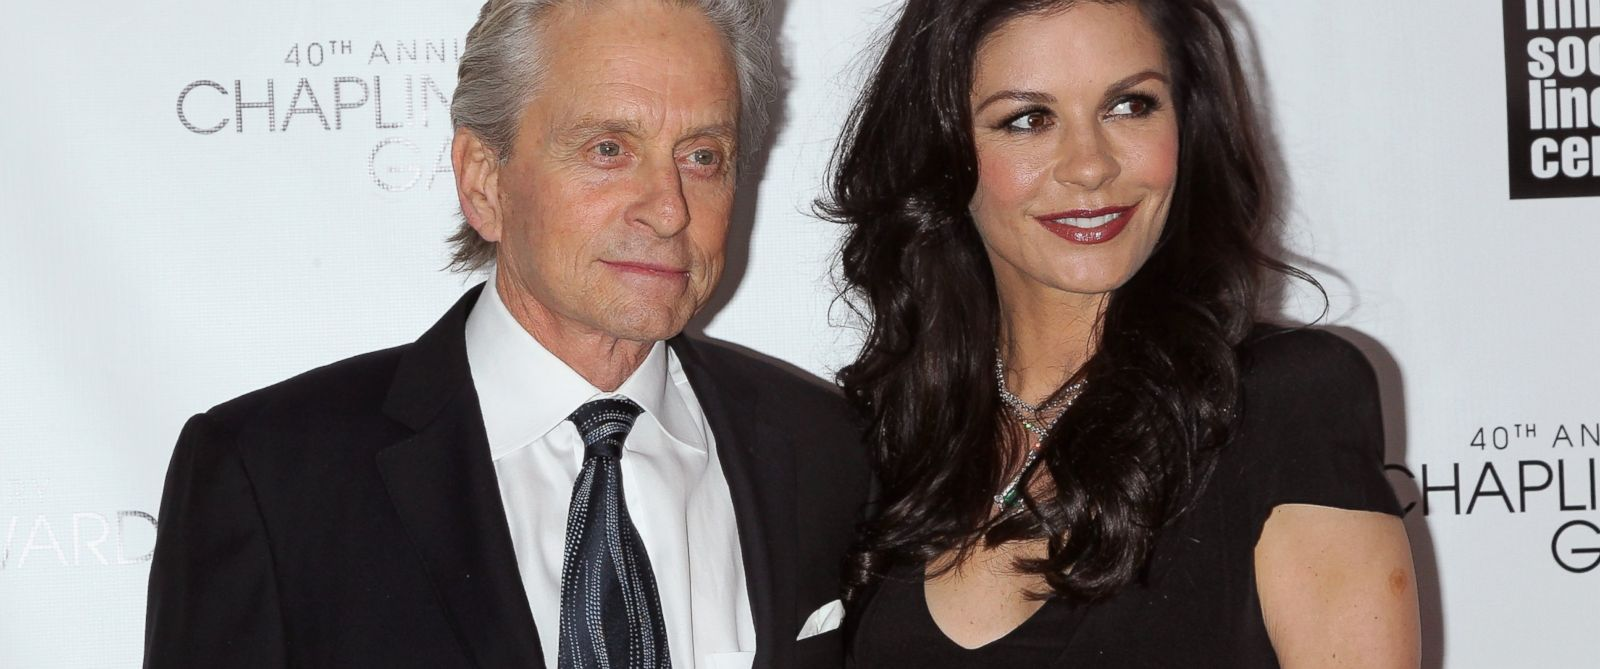 PHOTO: Actors Michael Douglas,left and Catherine Zeta Jones attend the 40th Anniversary Chaplin Award Gala at Avery Fisher Hall at Lincoln Center for the Performing Arts, April 22, 2013 in New York.